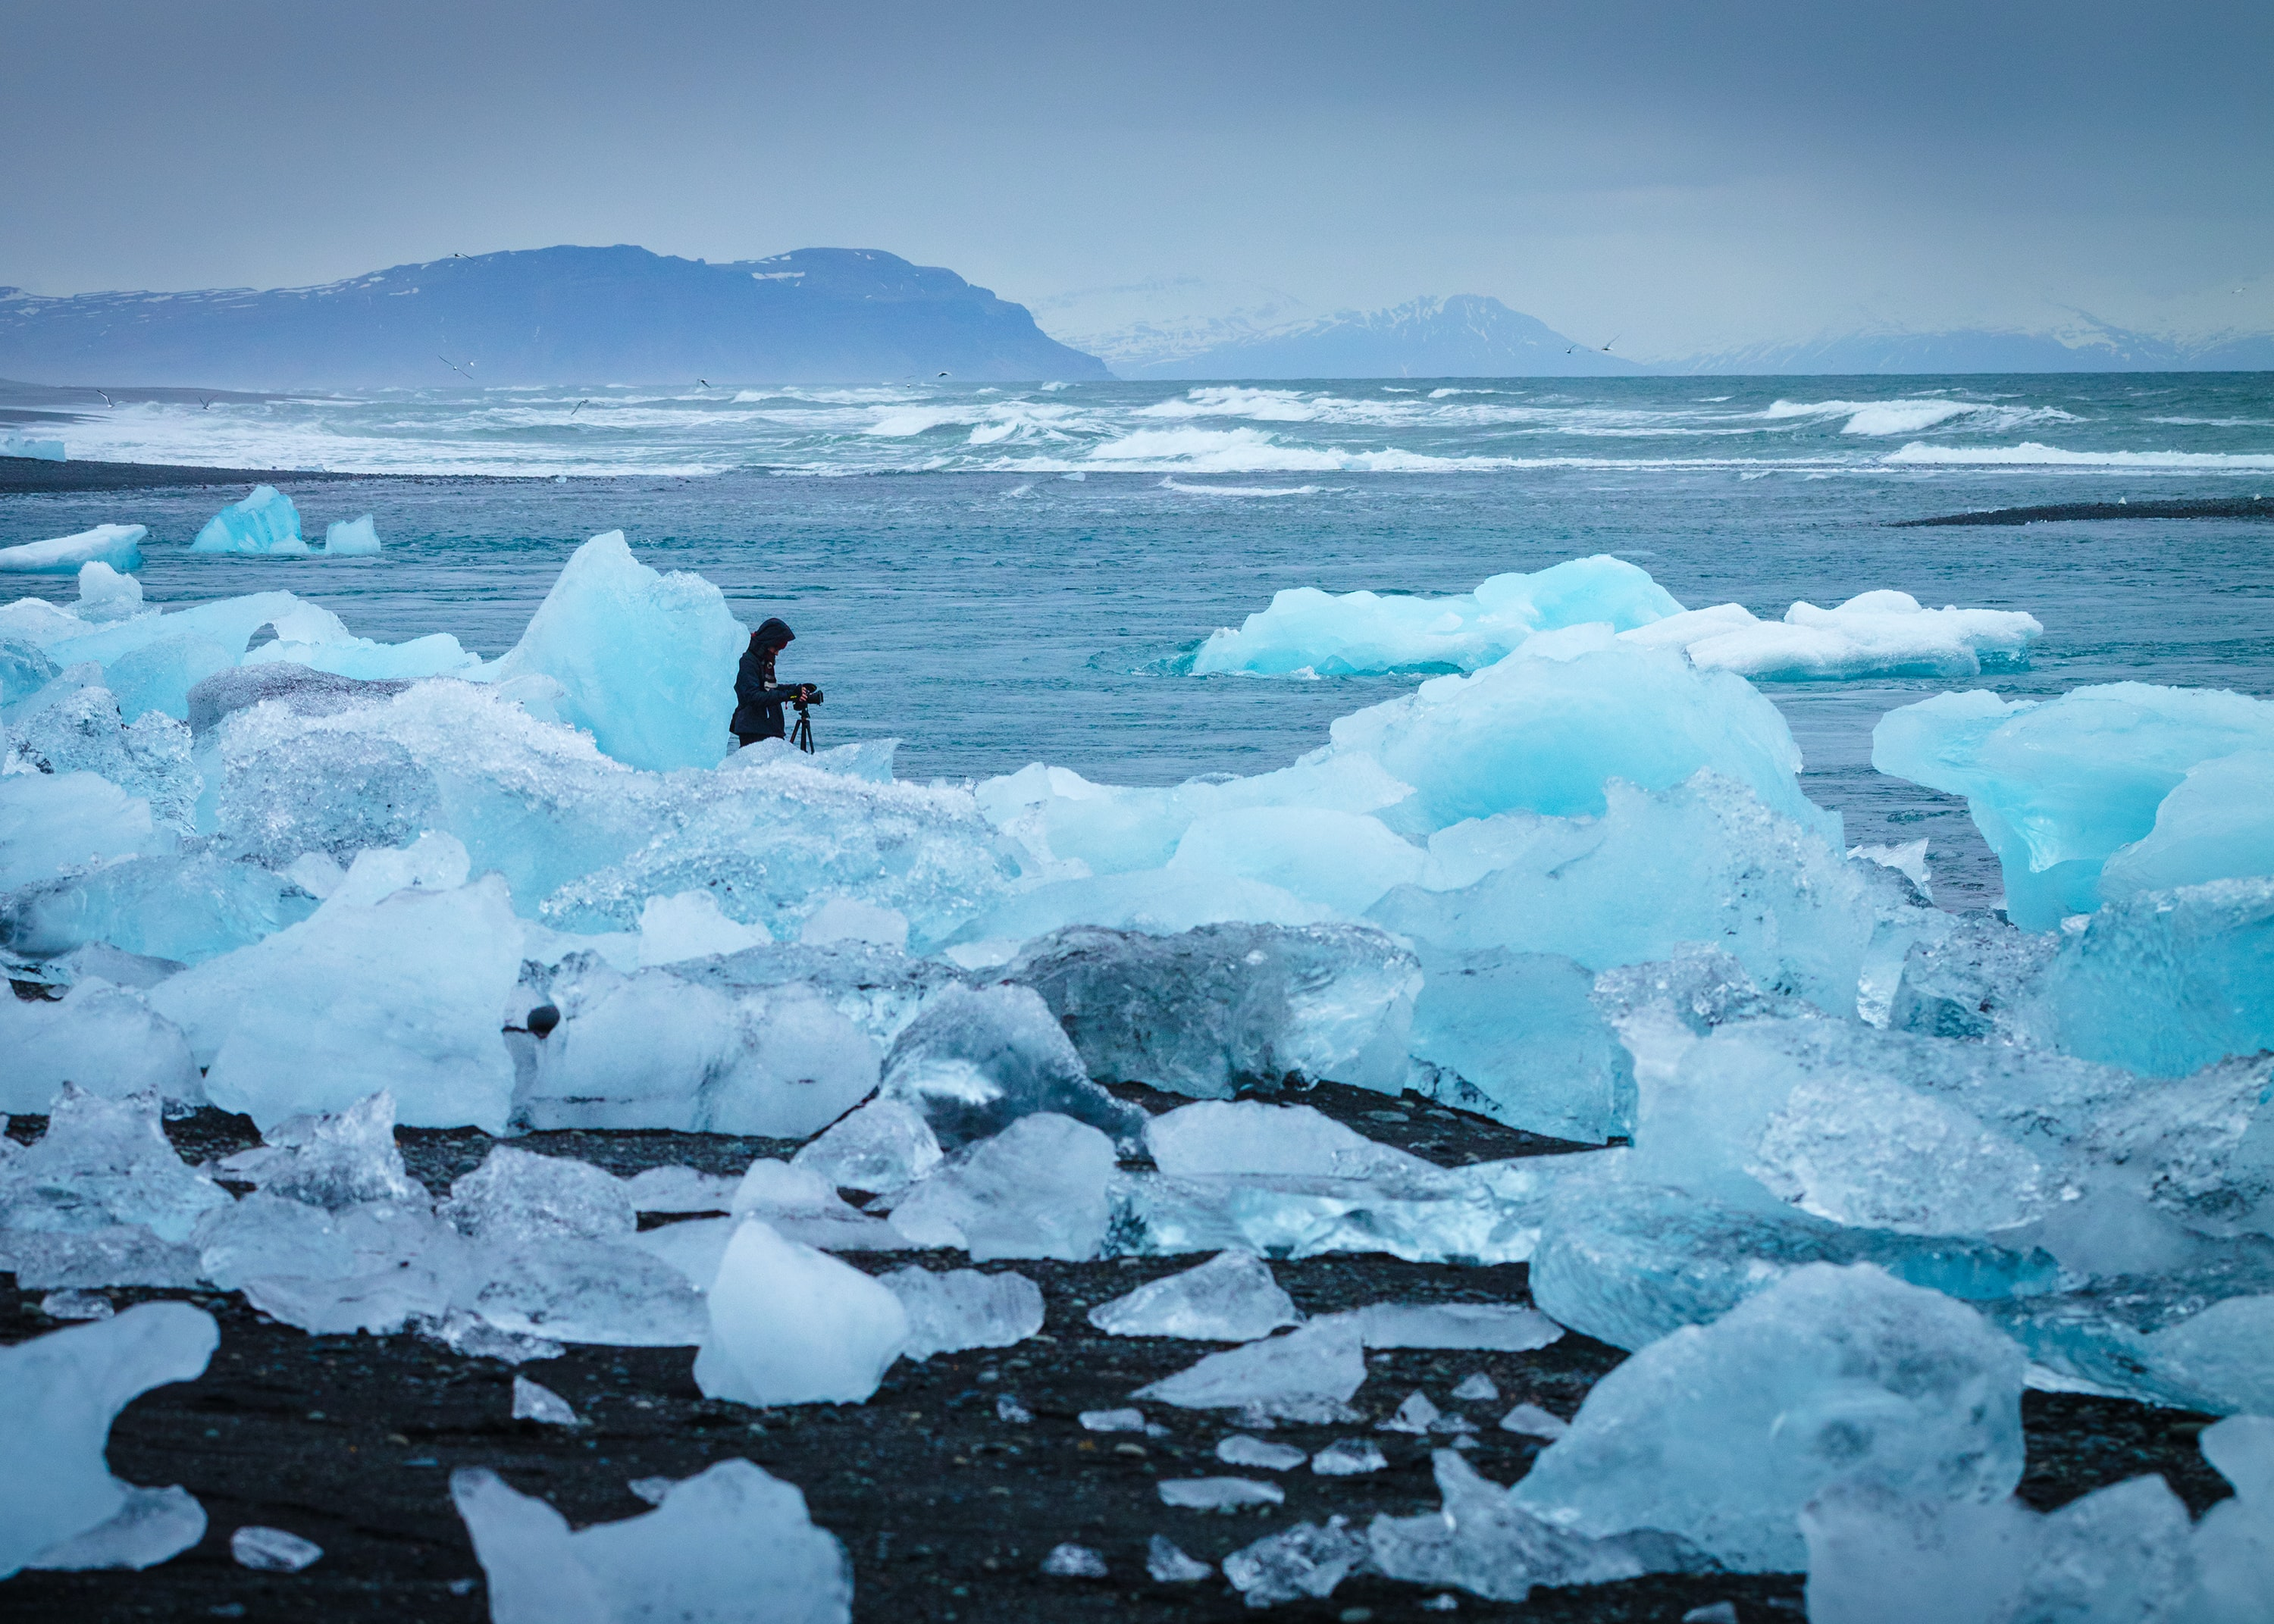 A photographer setting up a camera on a tripod on melting blue glaciers in the ocean